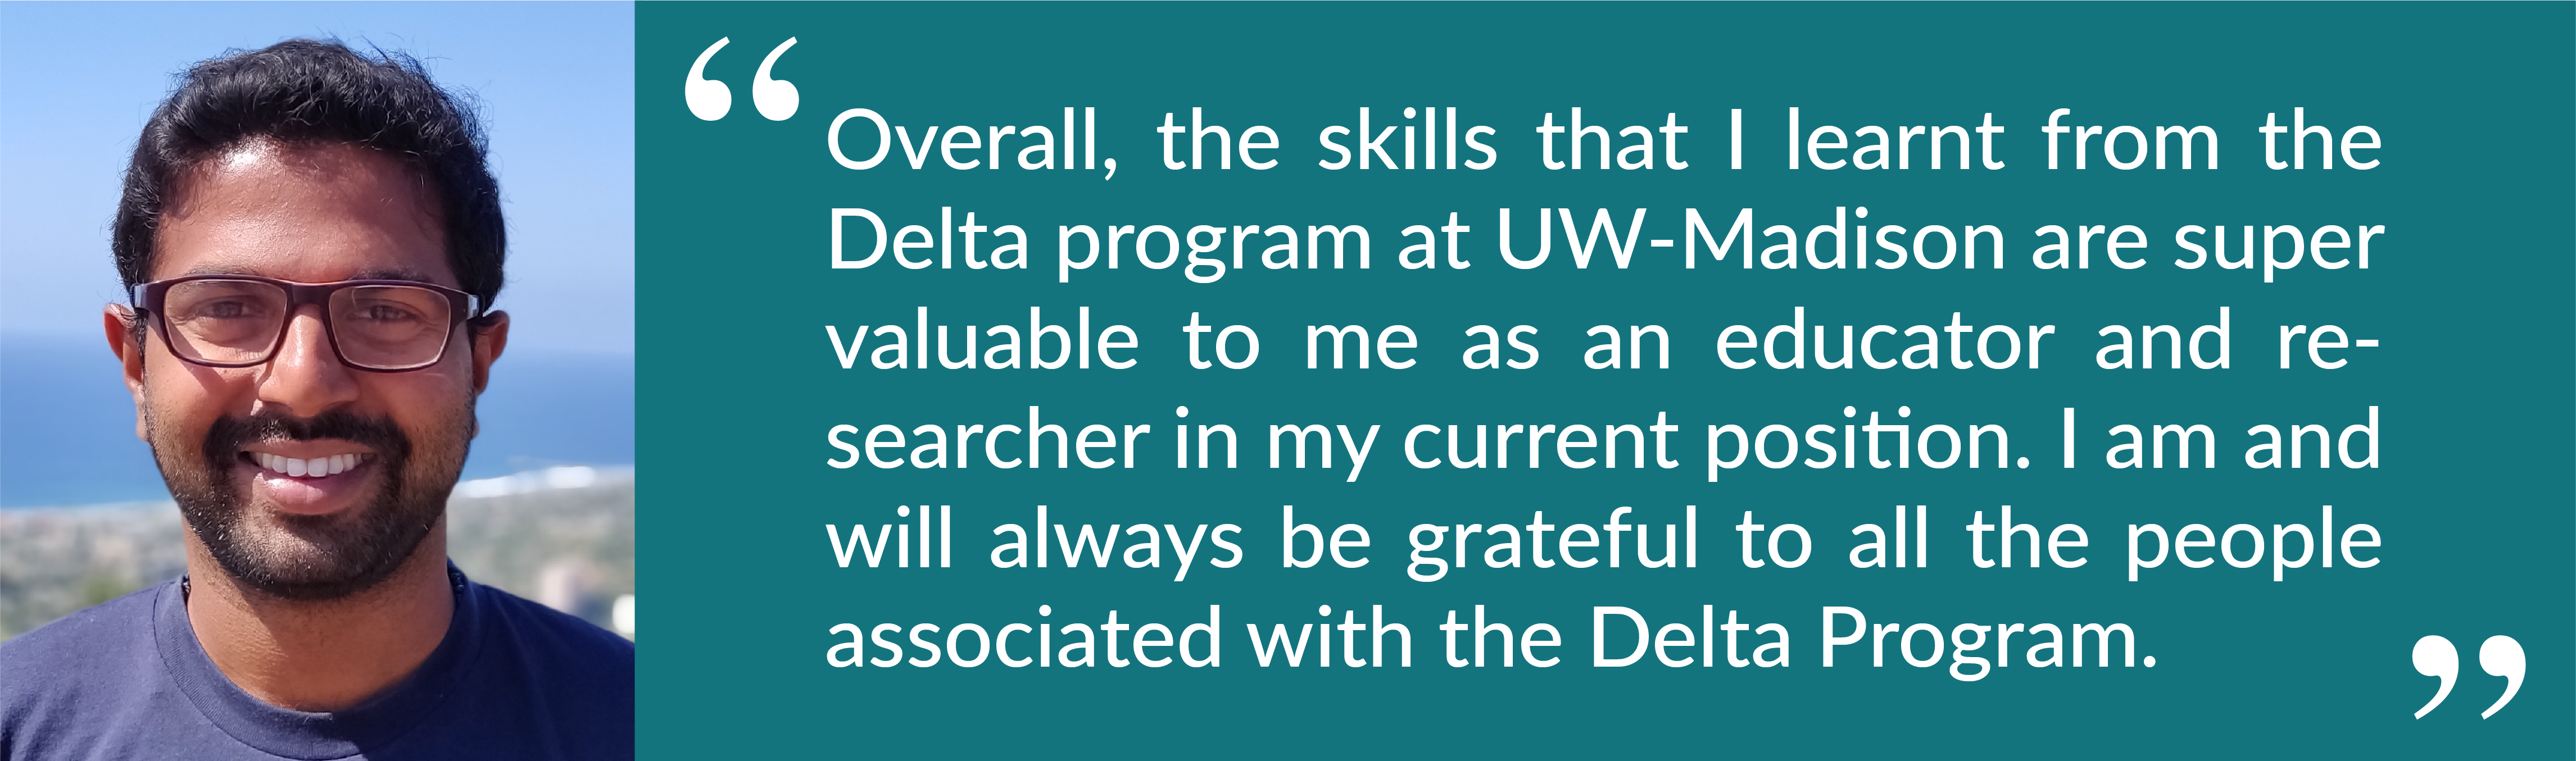 """Picture of Gerald with pull quote: """"Overall, the skills that I learnt from the Delta program at UW-Madison are super valuable to me as an educator and researcher in my current position. I am and will always be grateful to all the people associated with the Delta Program."""""""